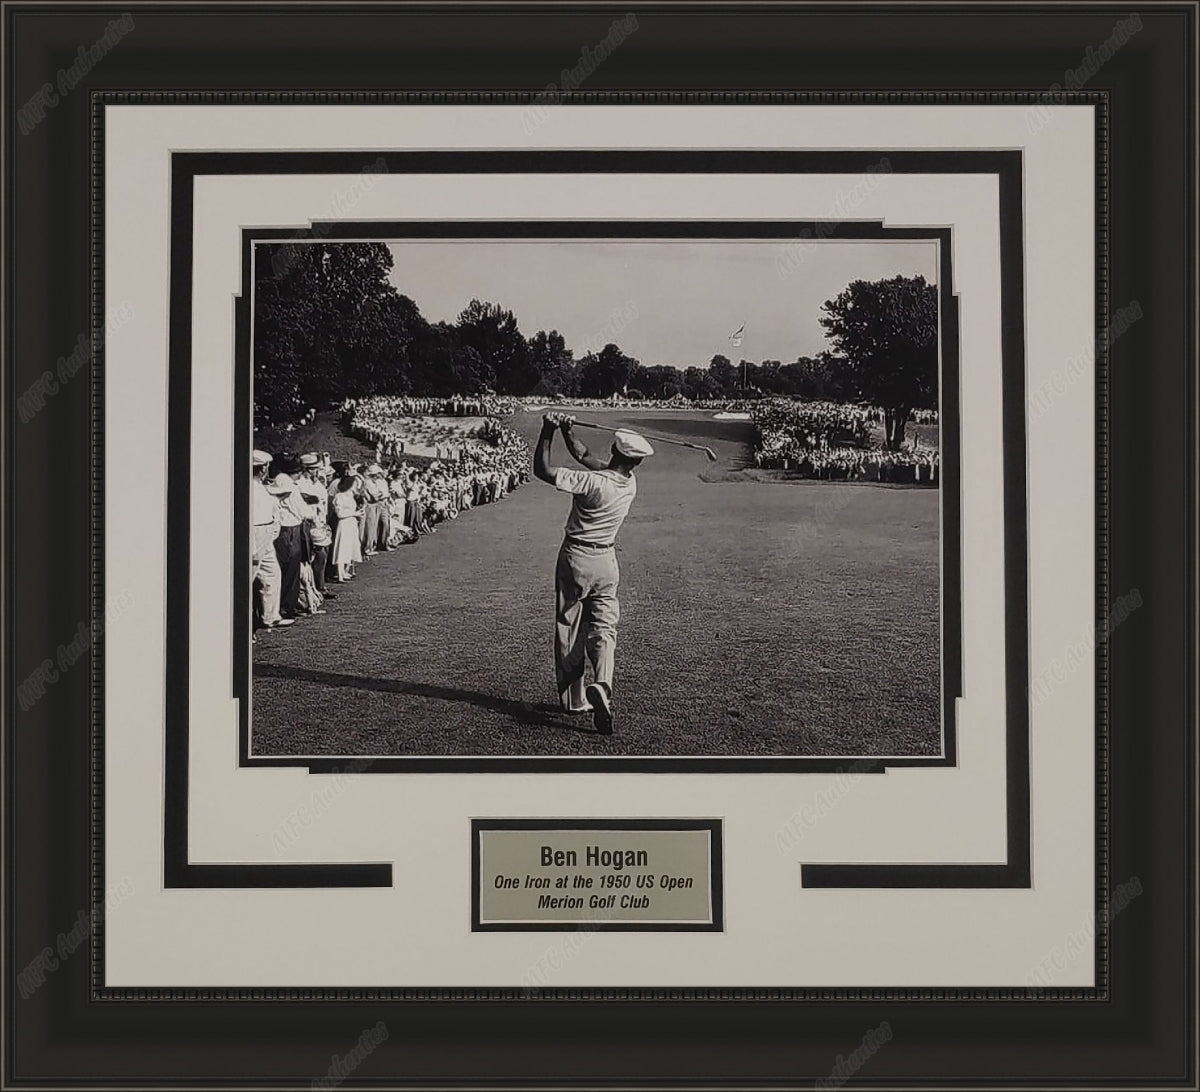 "Ben Hogan ""One Iron at the 1950 US Open"" 11x14 Framed Photo Display"